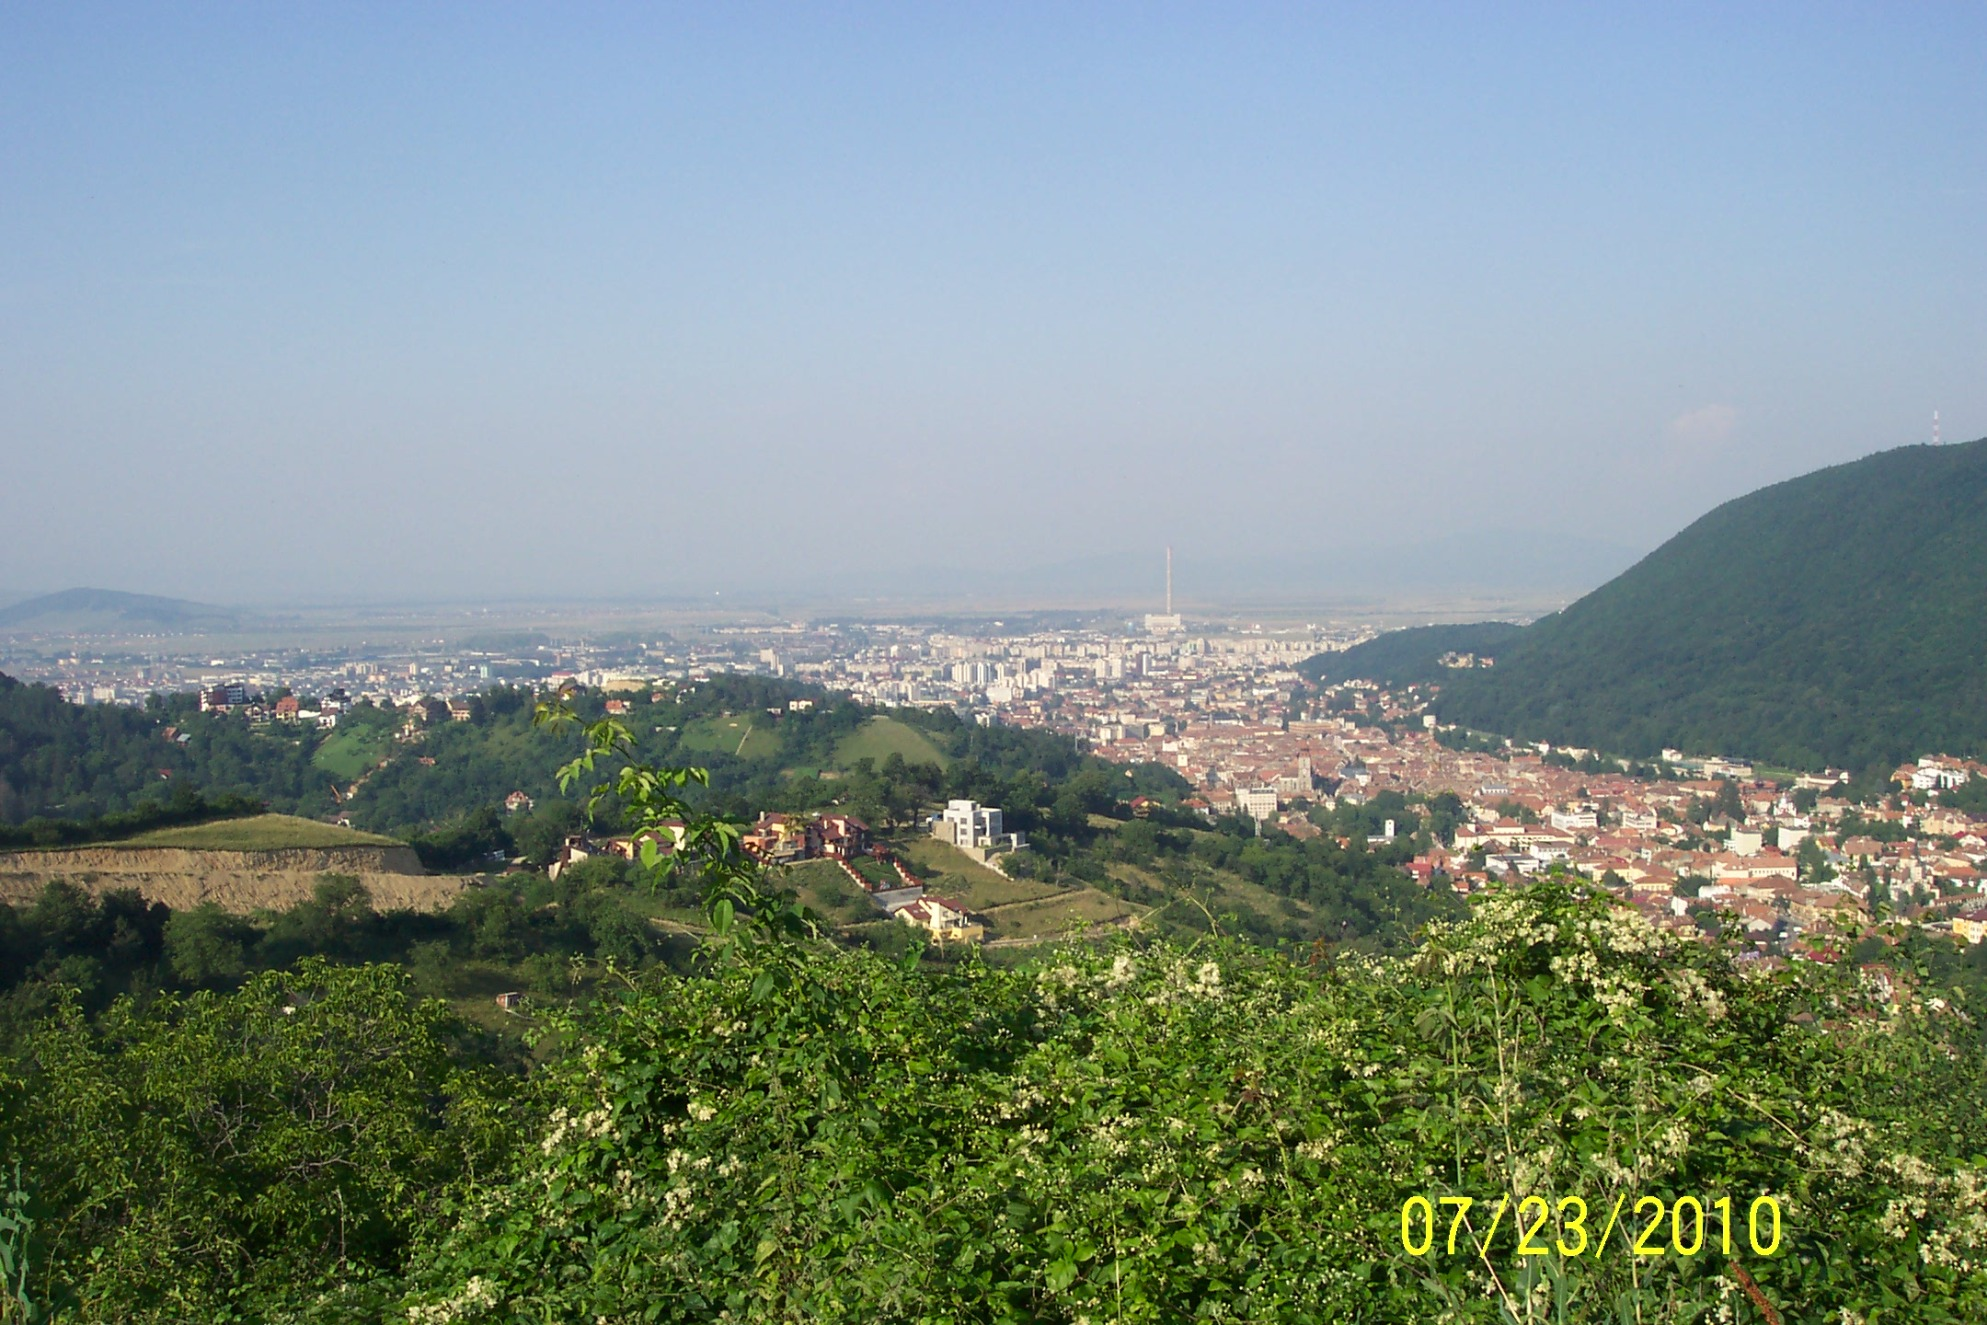 Another view of Brasov